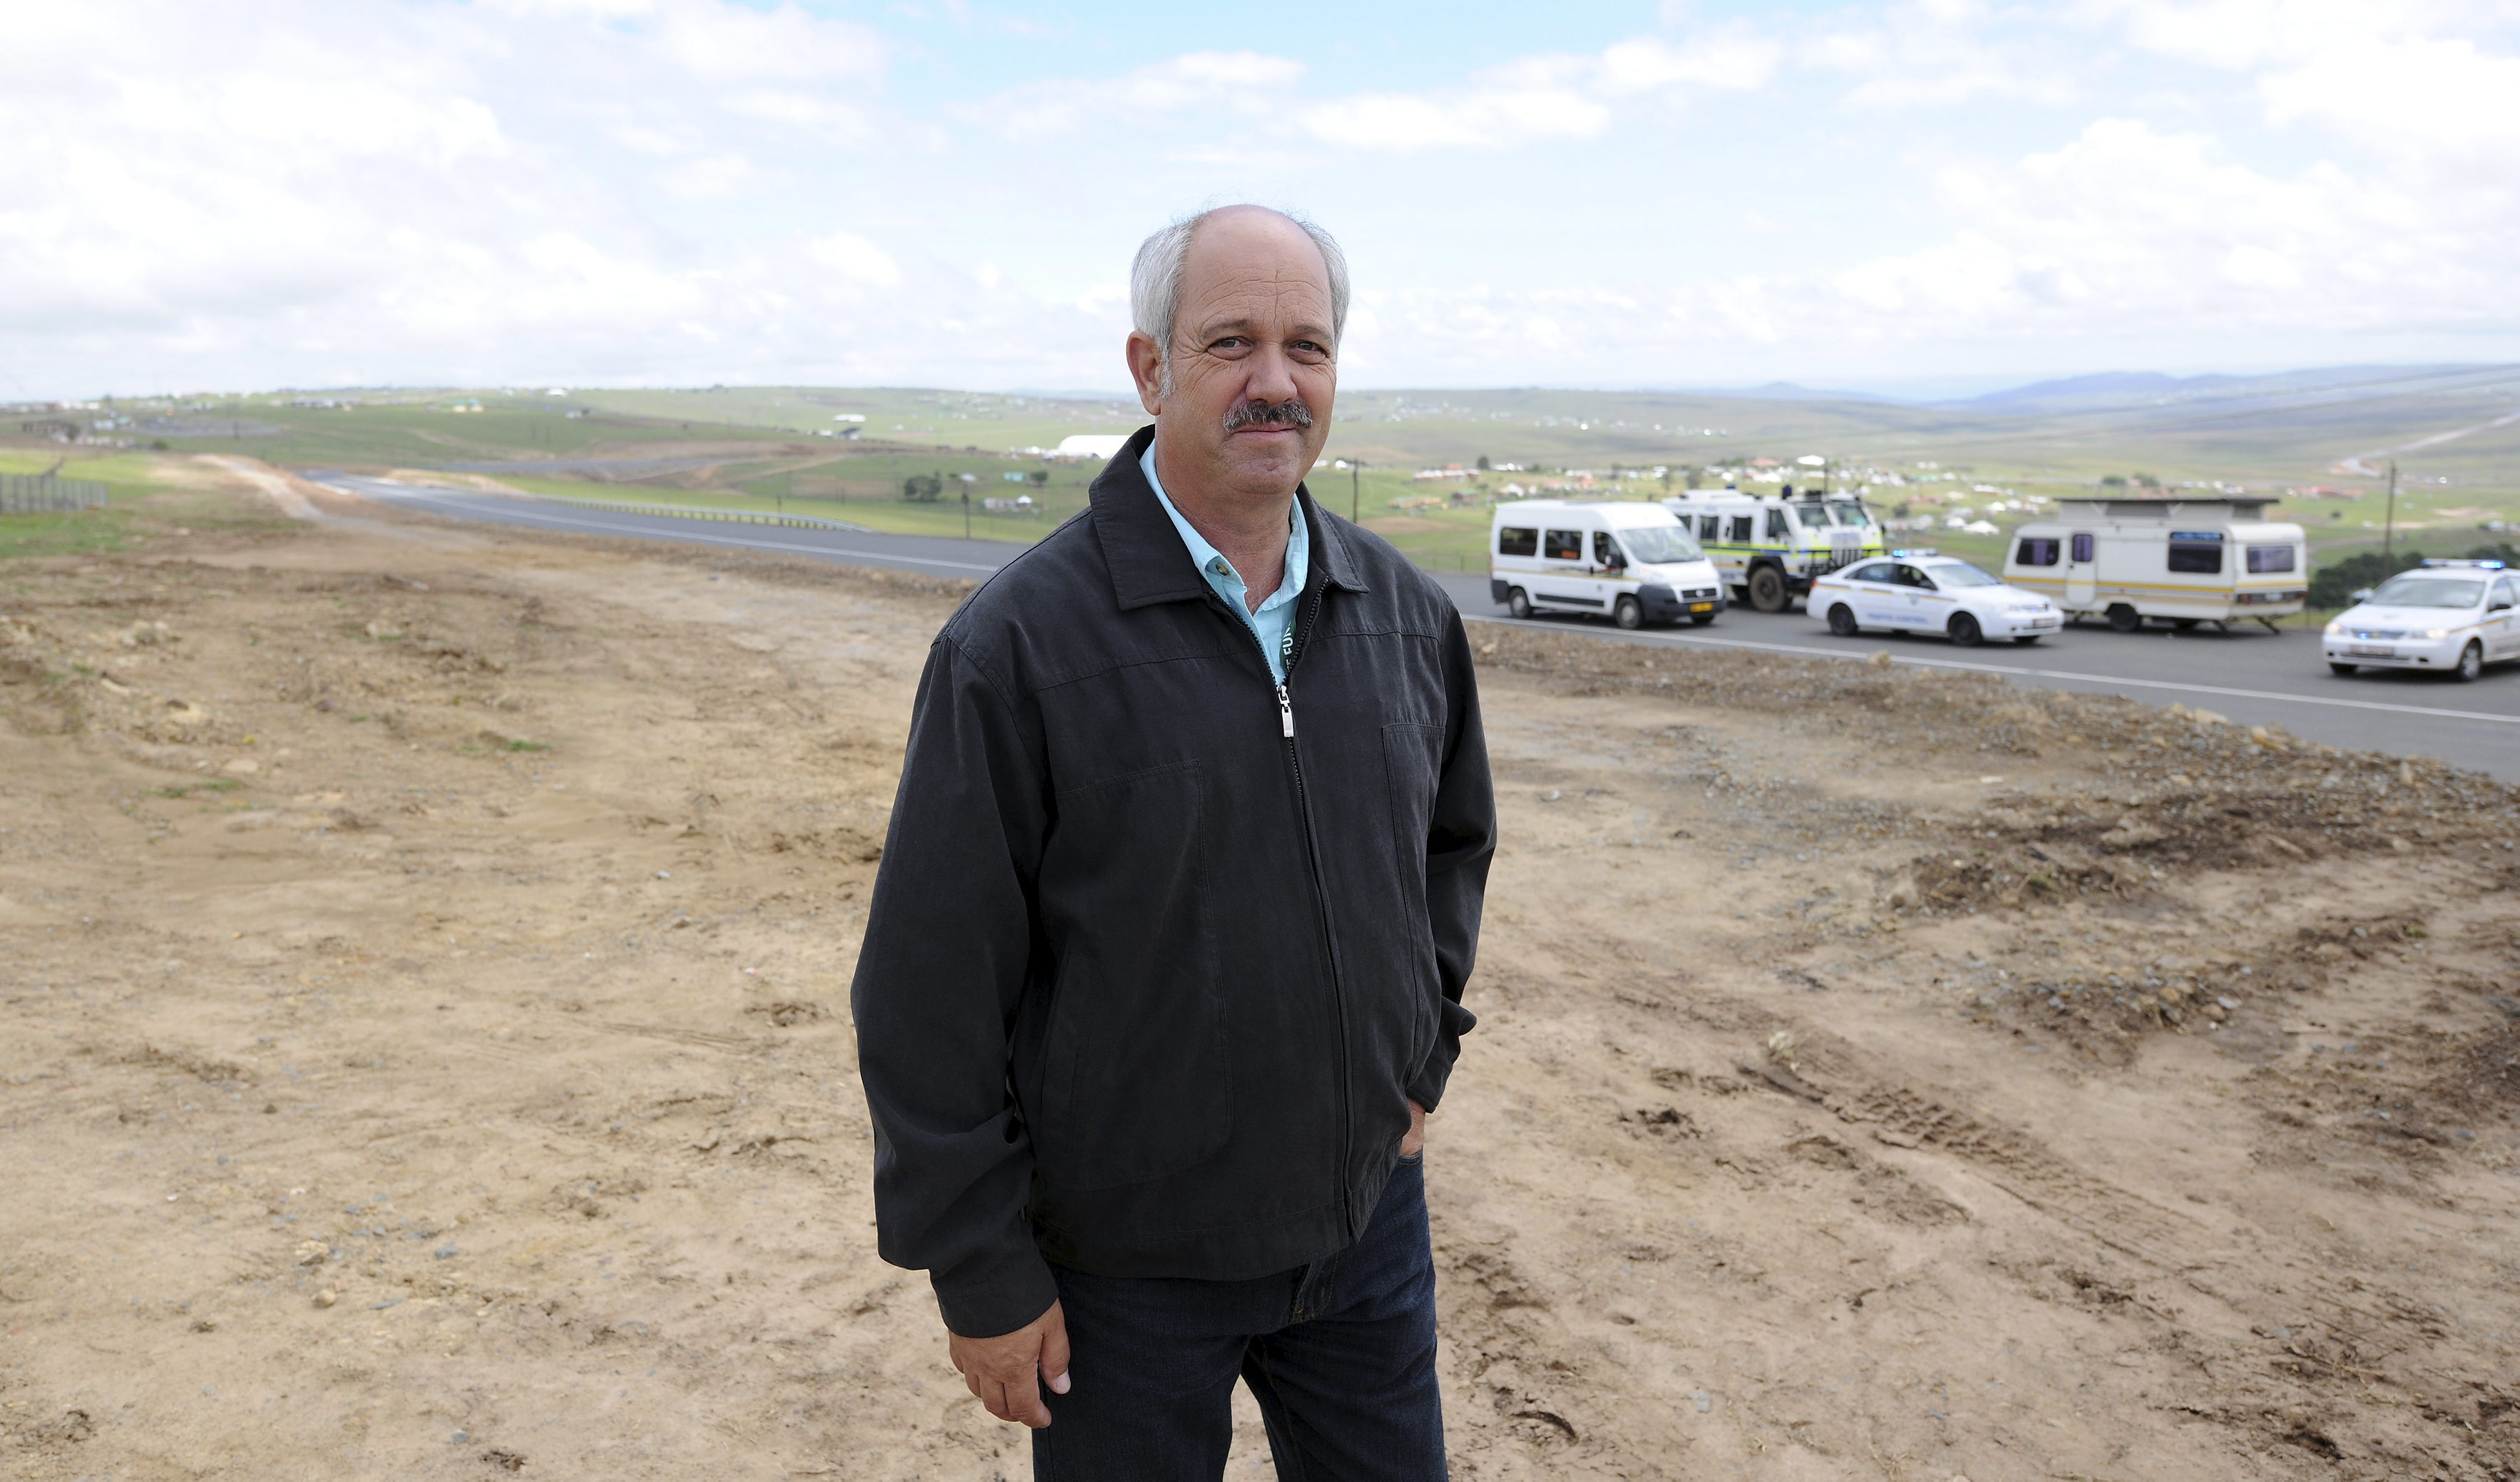 Christo Brand, Madiba's ex-prison guard, ahead of Nelson Mandela's State Funeral,  on December 14, 2013 in Qunu, South Africa.